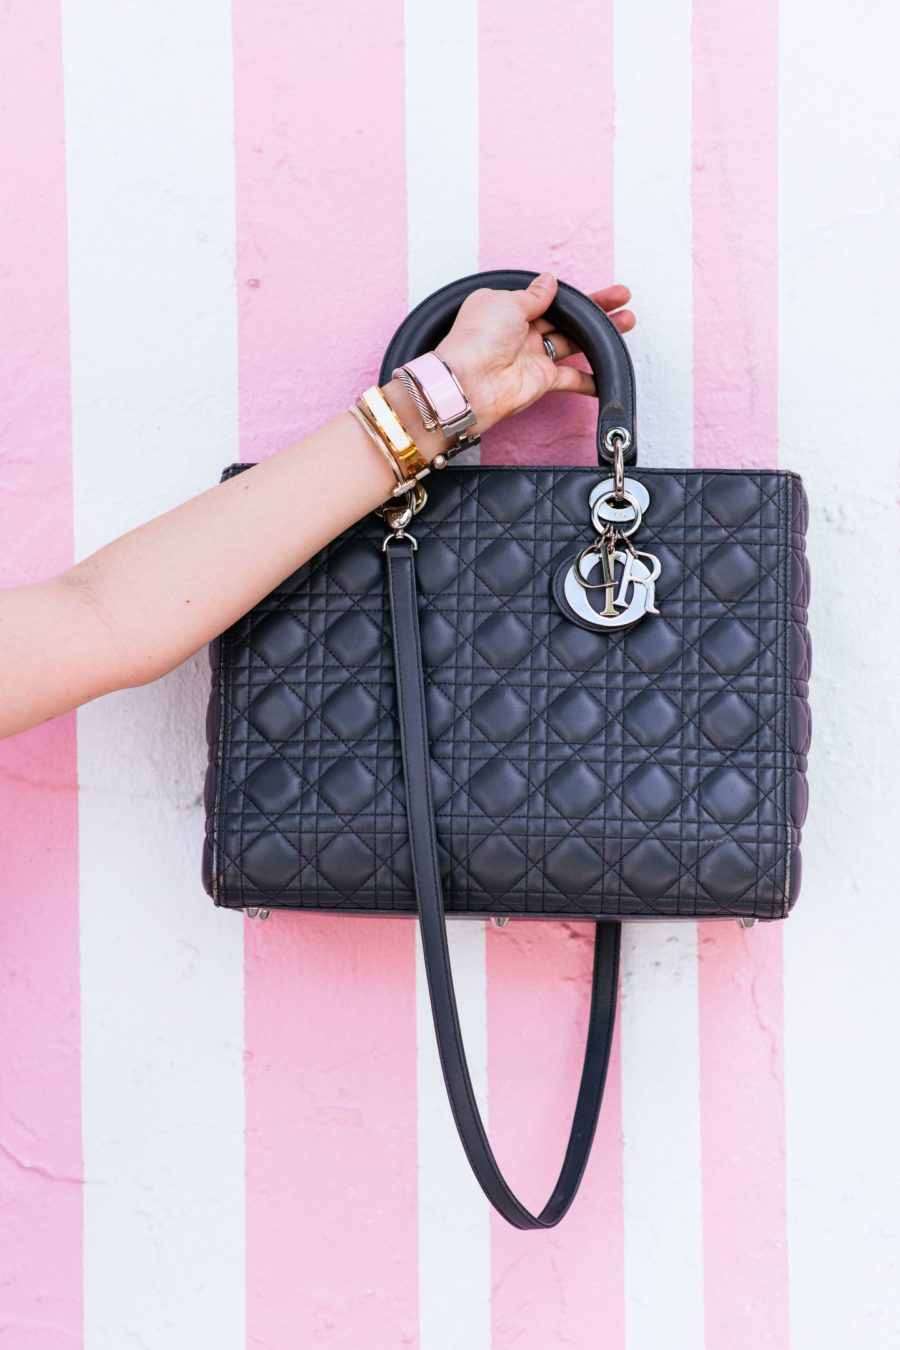 da5aa1c8b8b How to purchase designer handbags on a budget - Curated by Kirsten